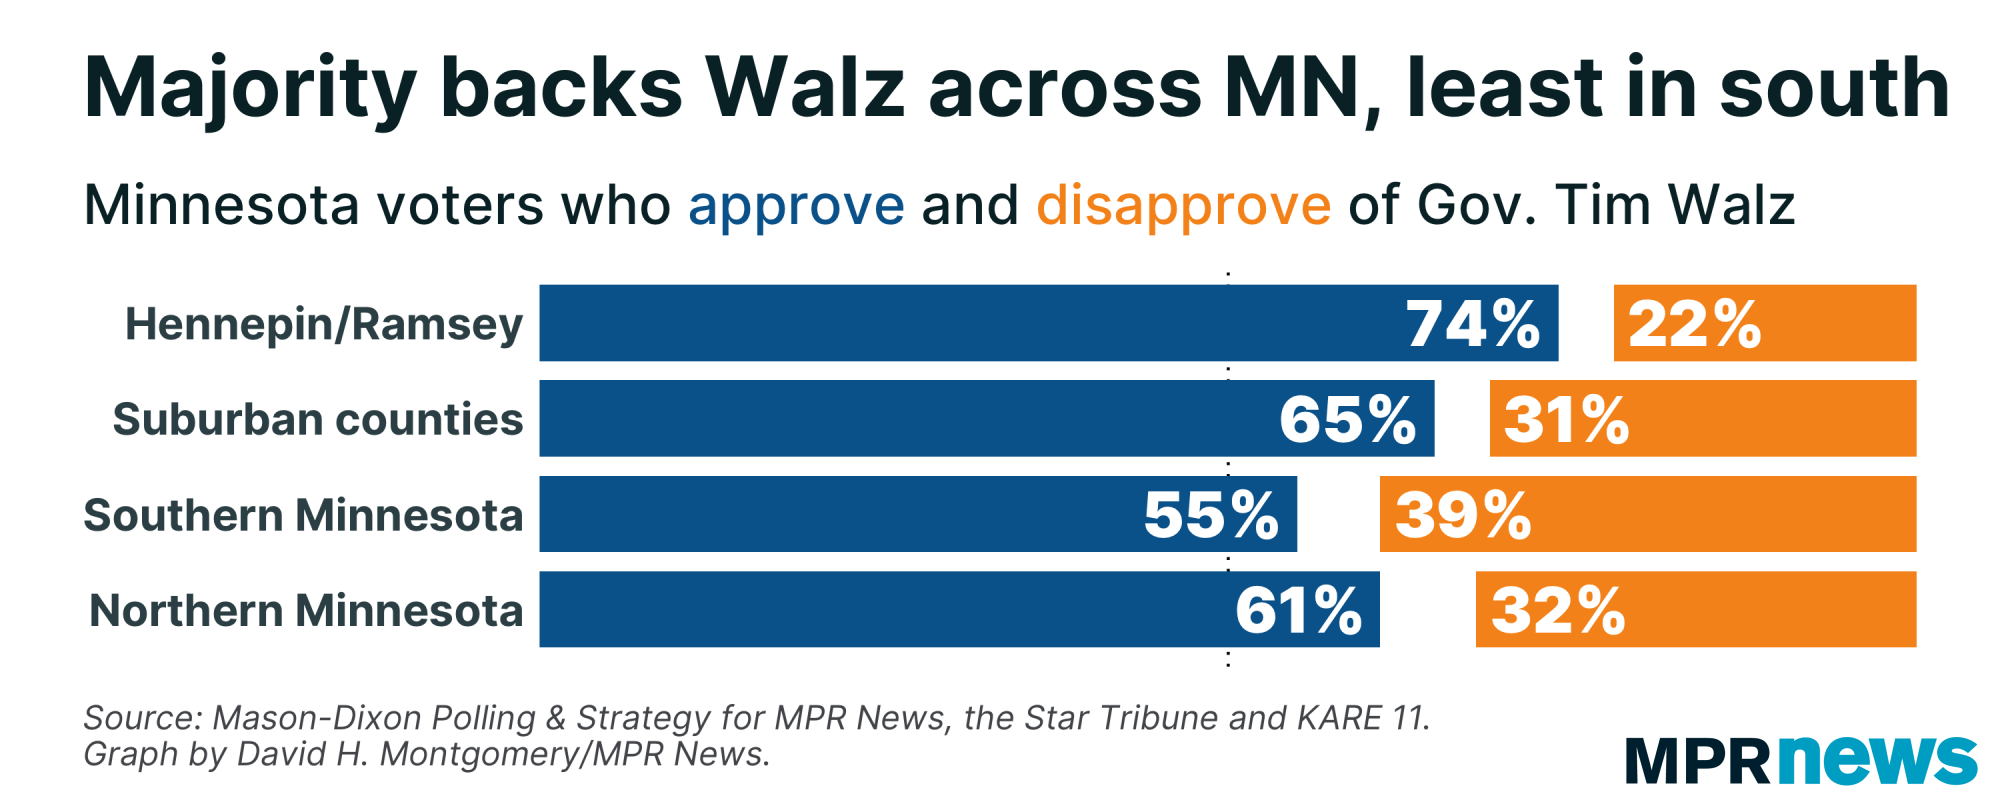 Majority supports Gov. Tim Walz across state, least in southern MN